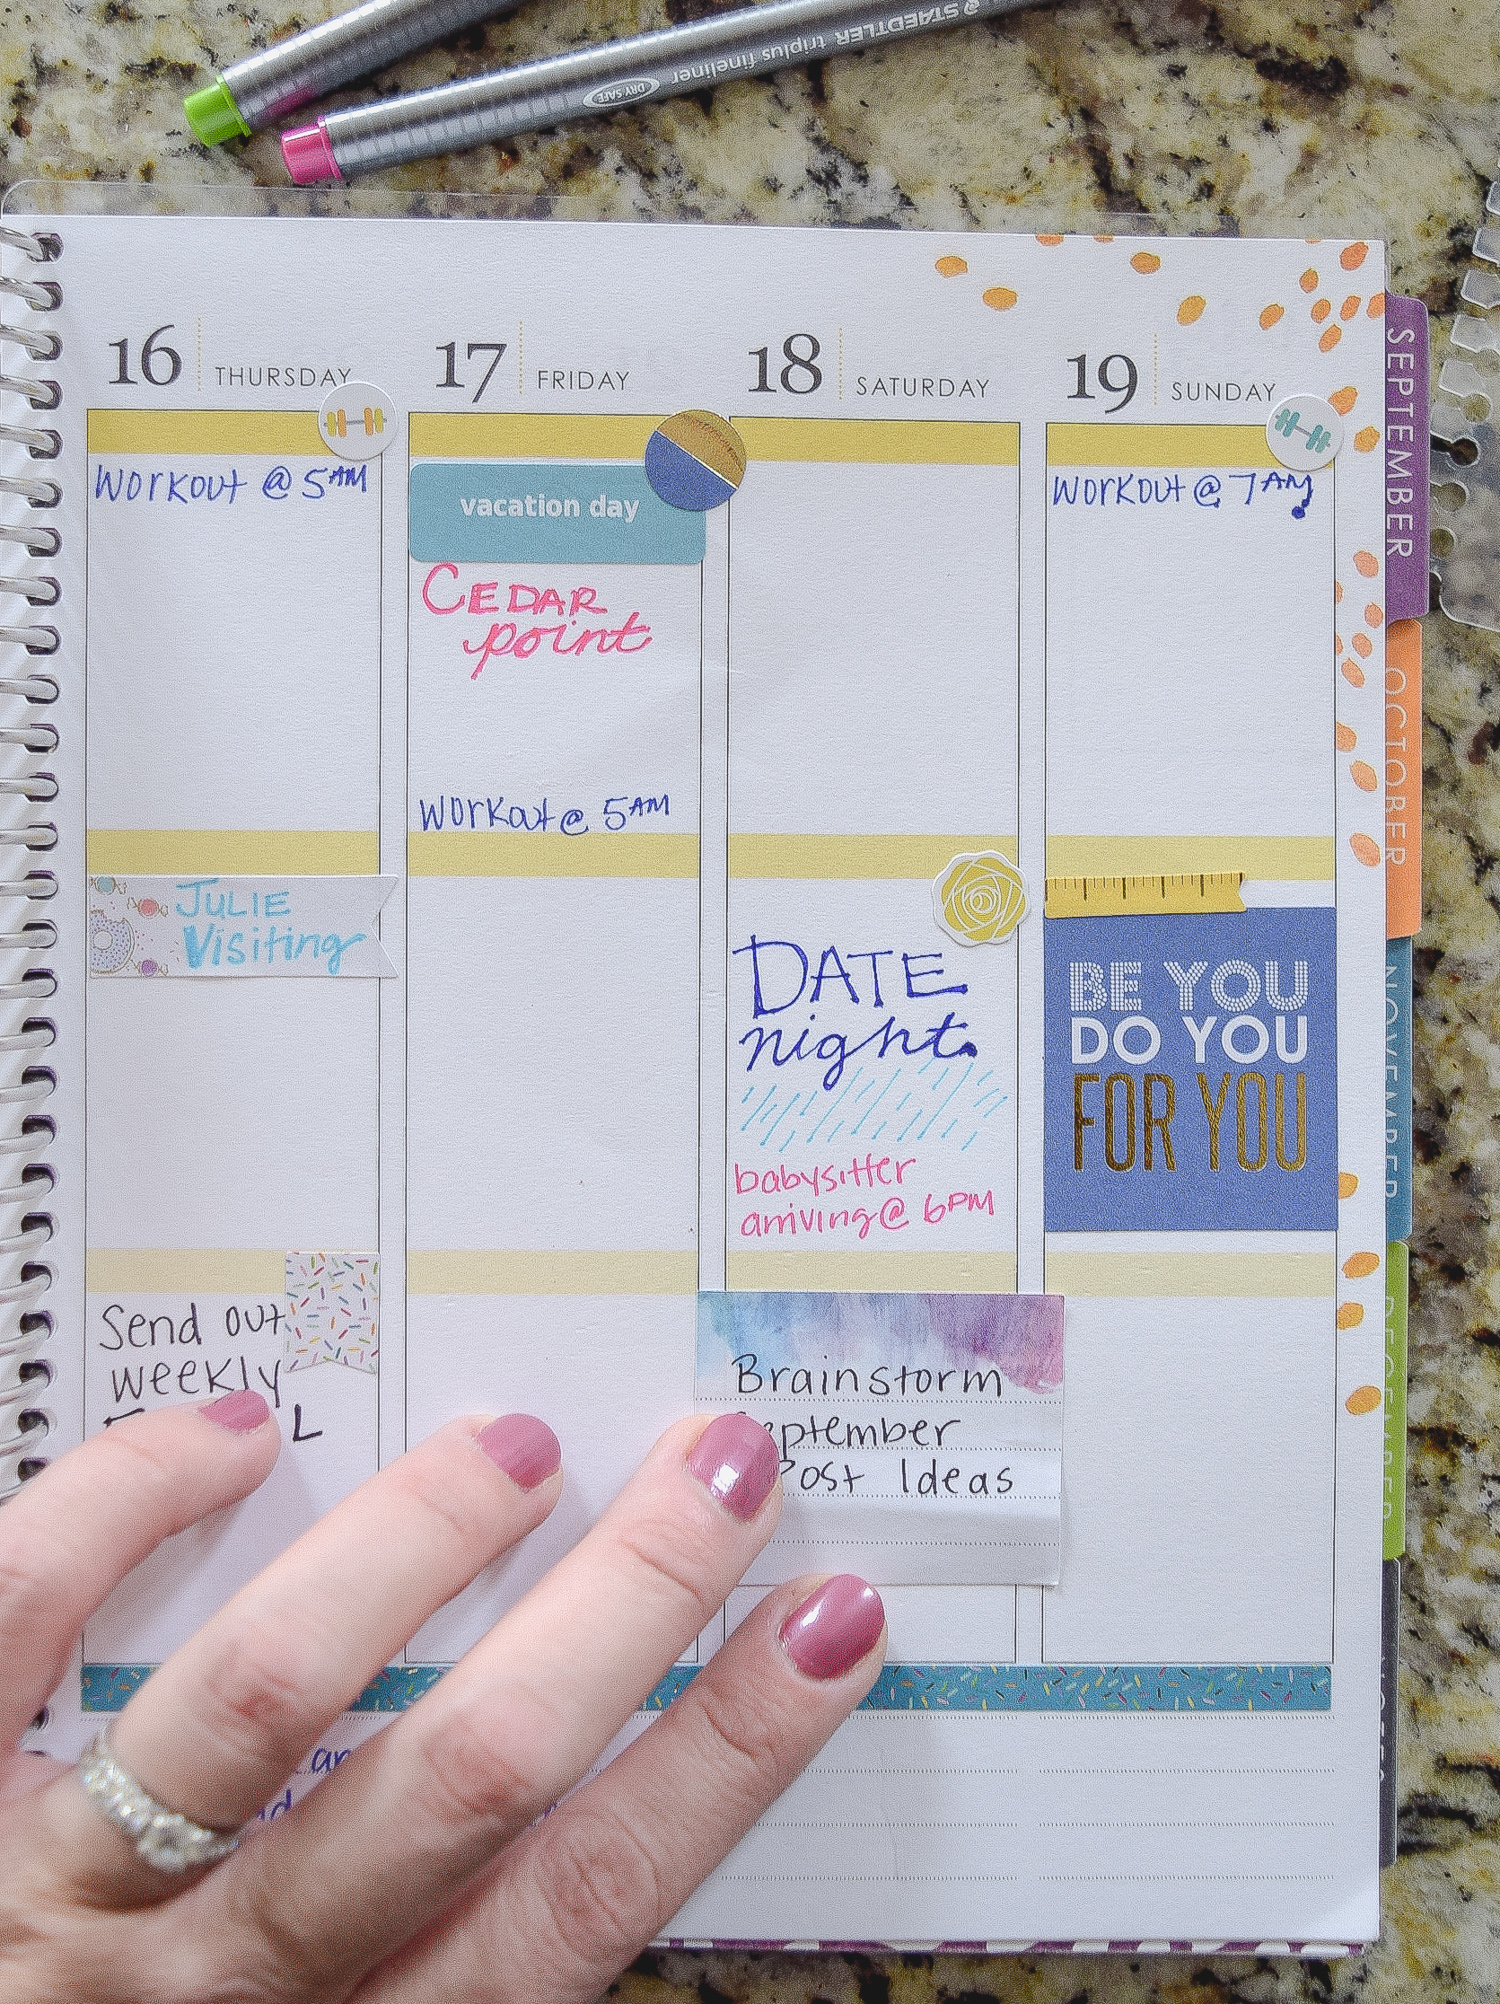 Stickers are GREAT if you want to use a planner effectively. Add stickers to spice up your weekly planner!